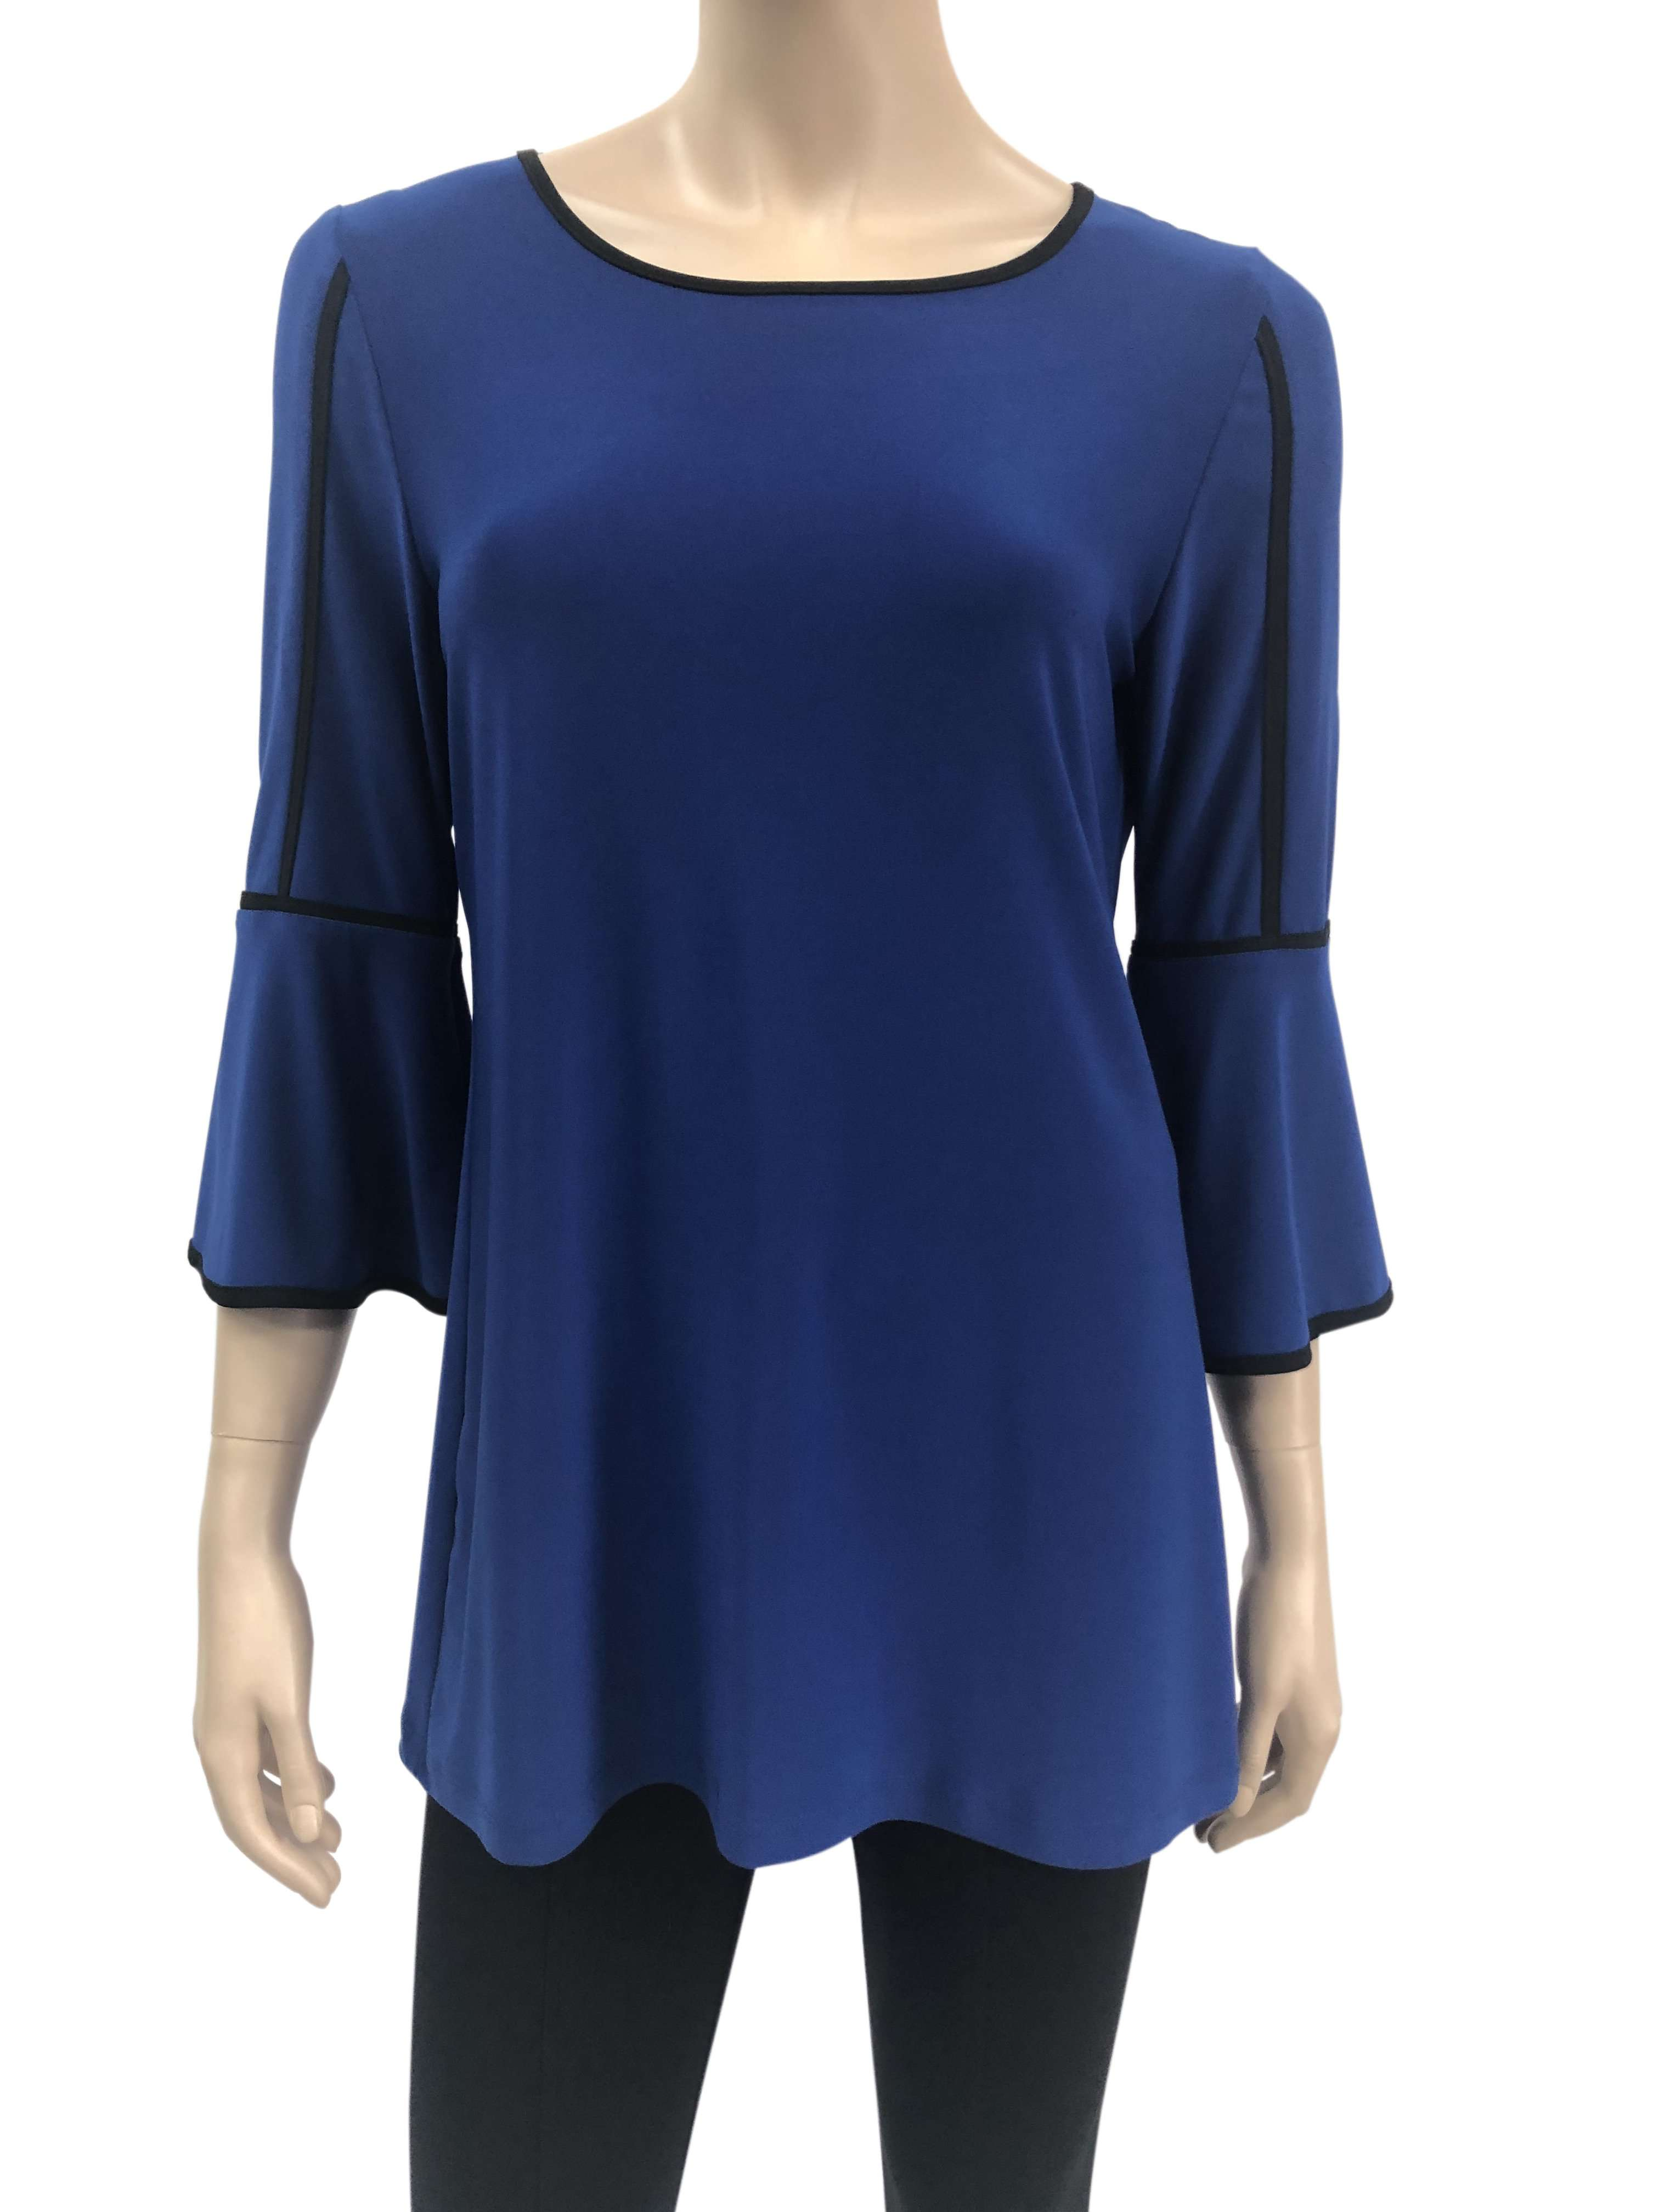 Women's Tops on Sale Royal Blue Flattering Fit - Made in Canada - Yvonne Marie - Yvonne Marie